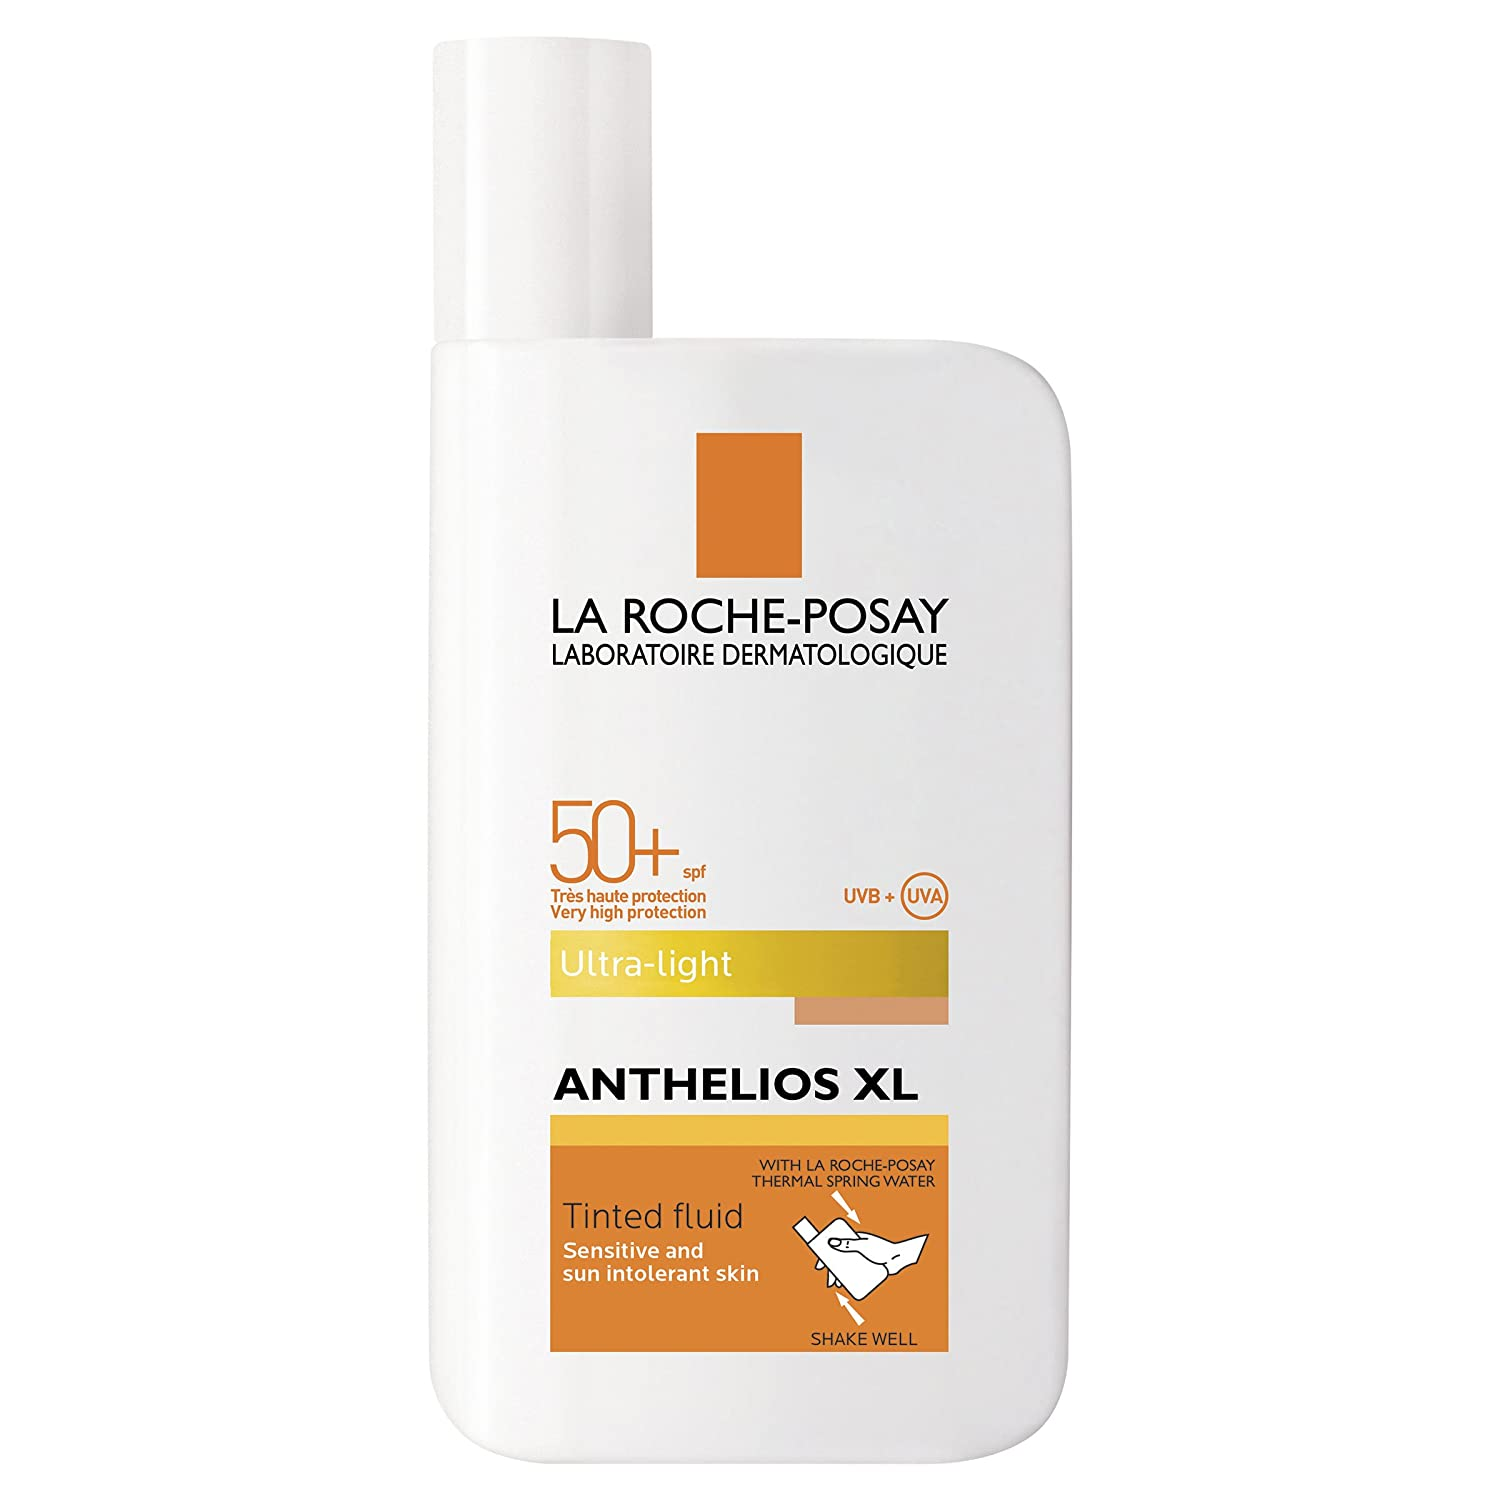 La Roche-Posay Anthelios XL SPF 50+ Tinted Fluid Ultra-Light 50ml La Roche Posay 67081